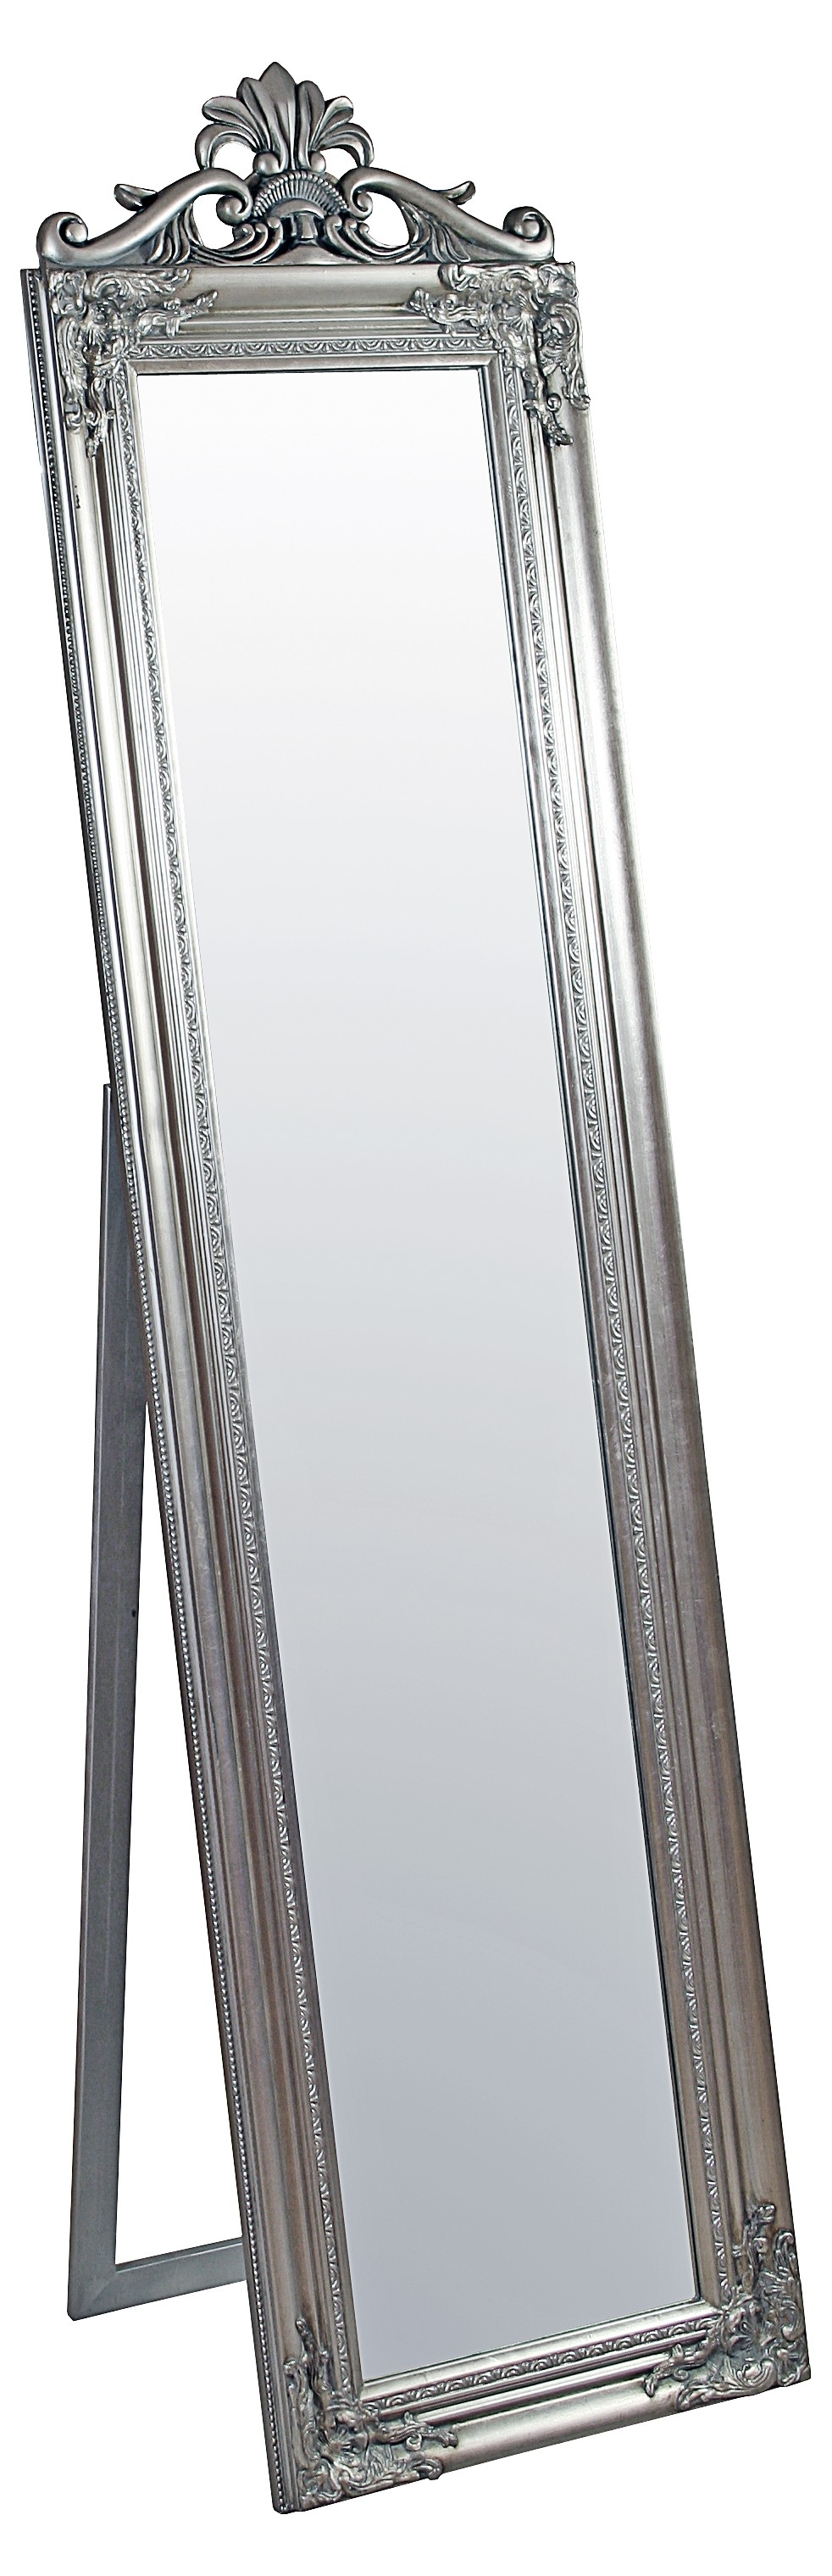 silver floor mirror. Floor Mirrors Full Length Standing Decorative Be Fabulous In Silver Mirror (Image